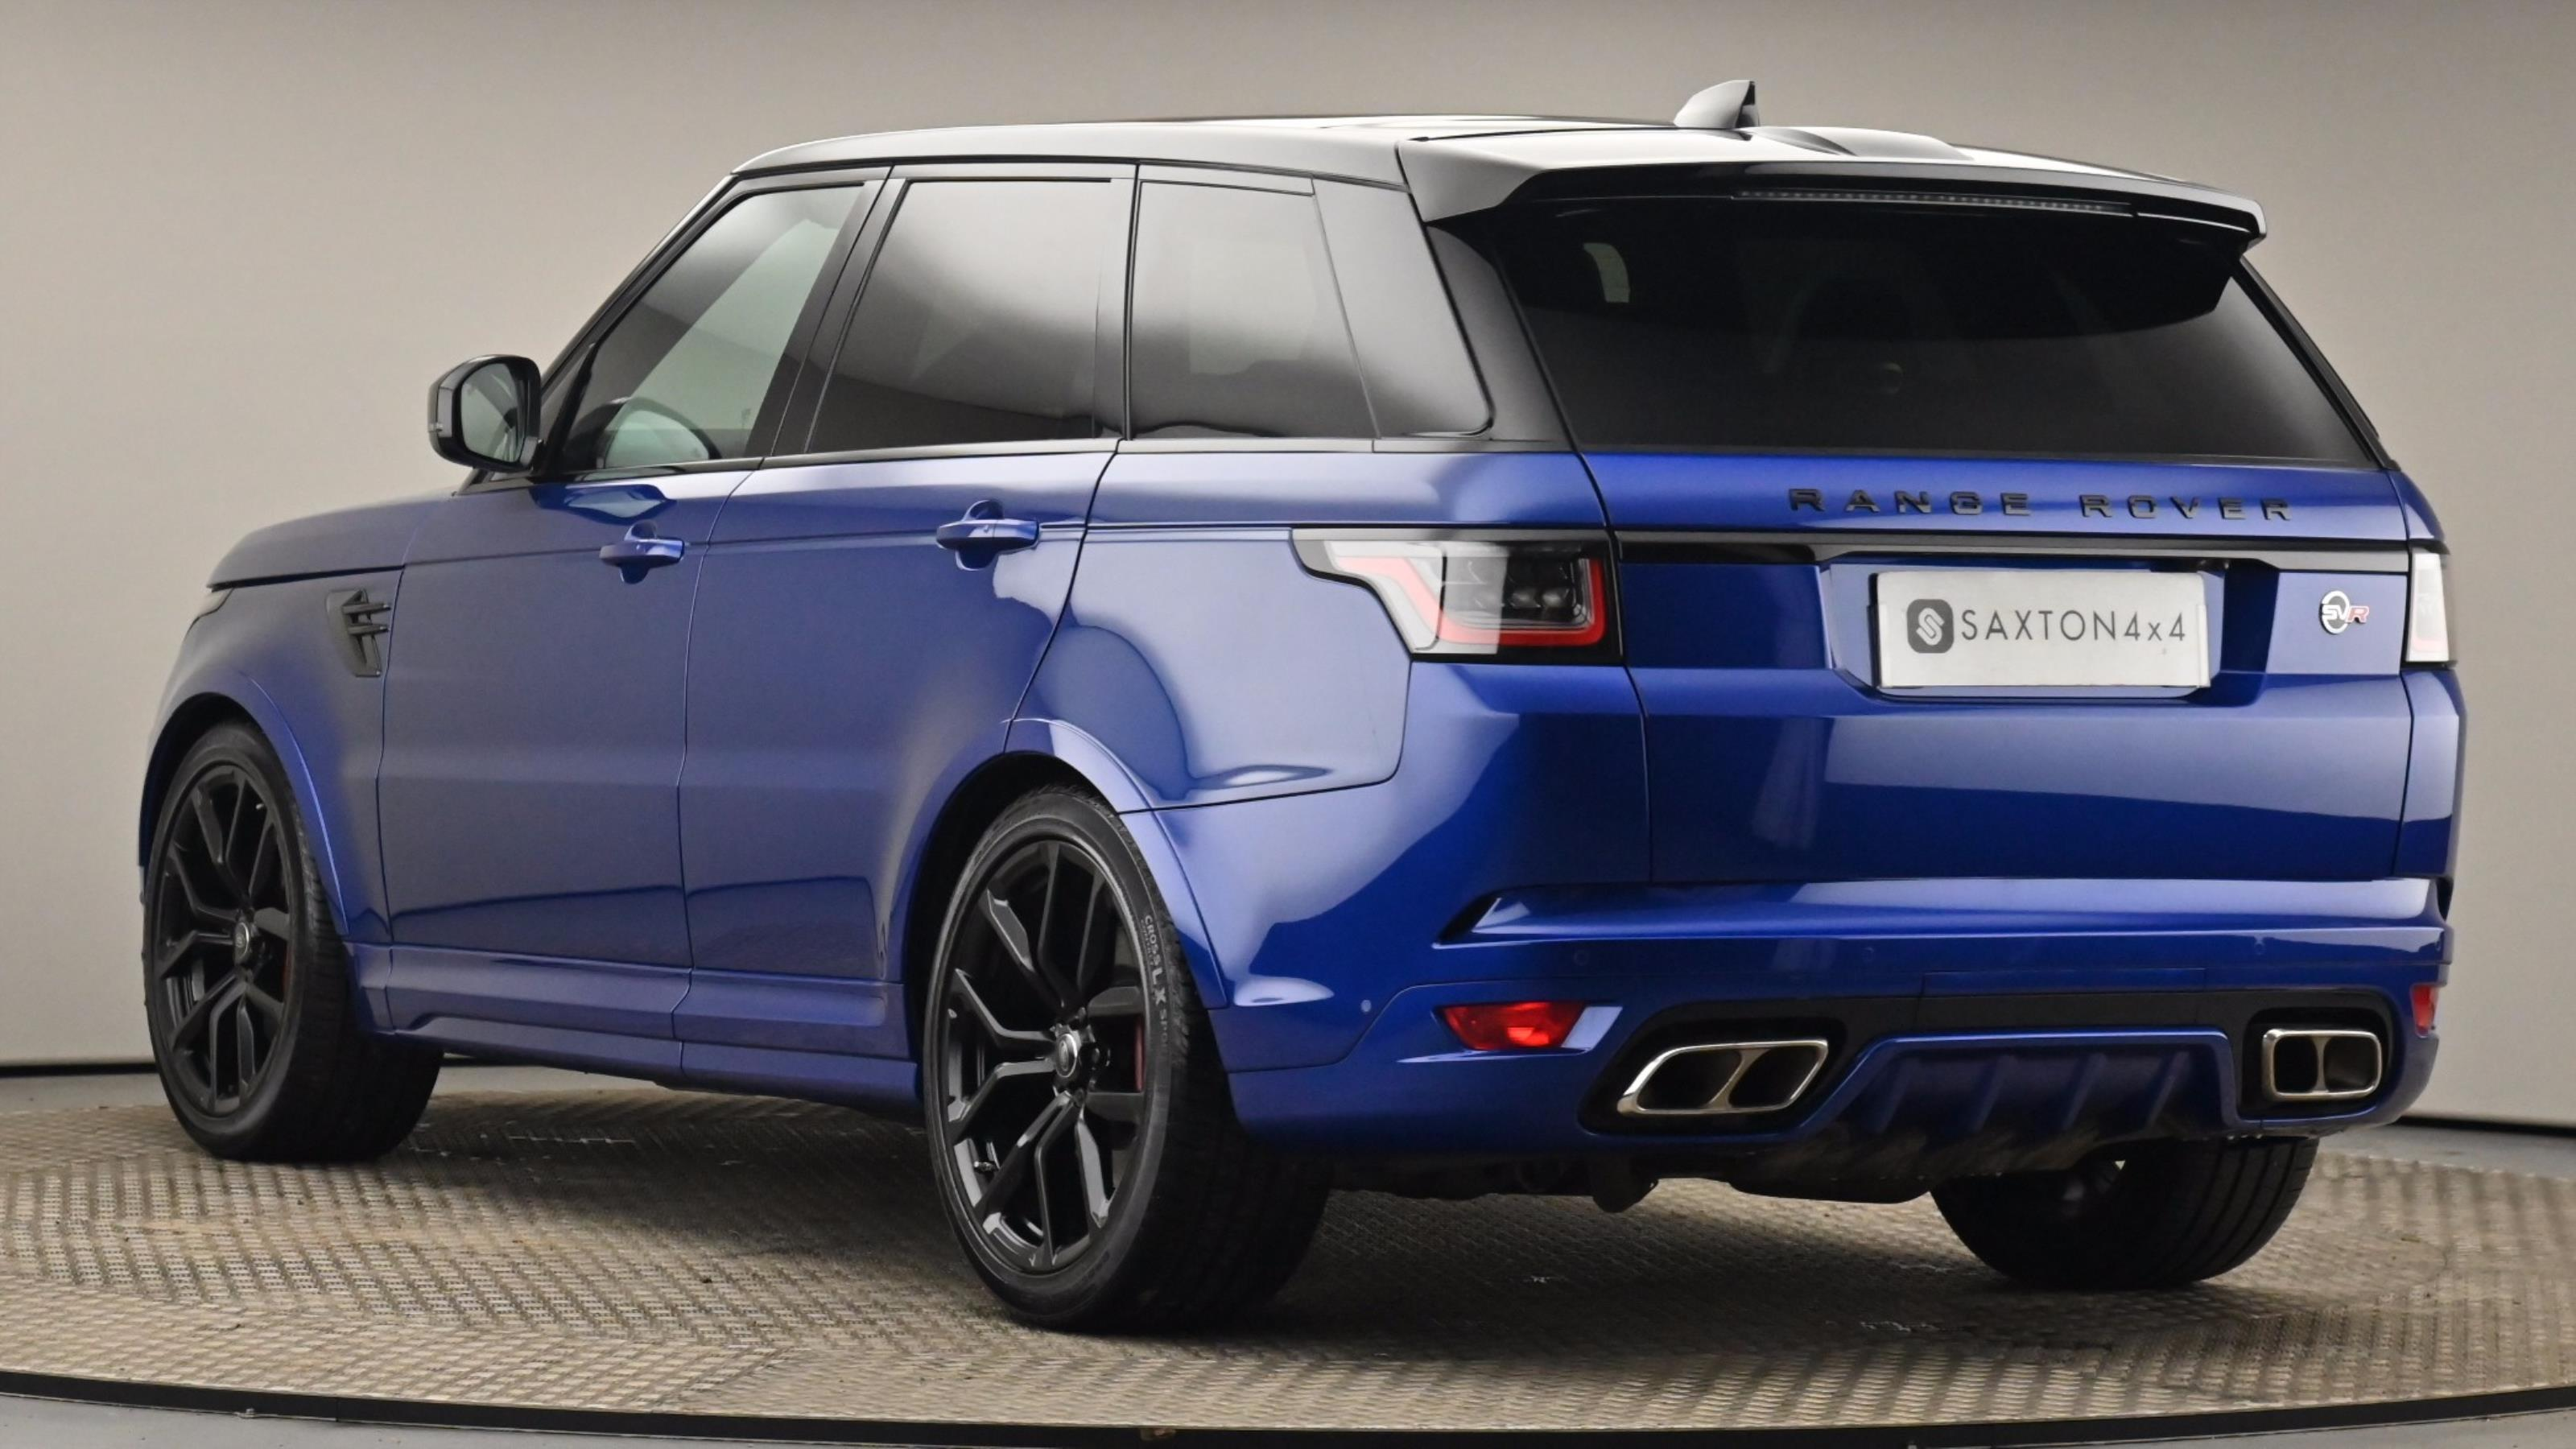 Used 2018 Land Rover RANGE ROVER SPORT 5.0 V8 S/C 575 SVR 5dr Auto Blue at Saxton4x4